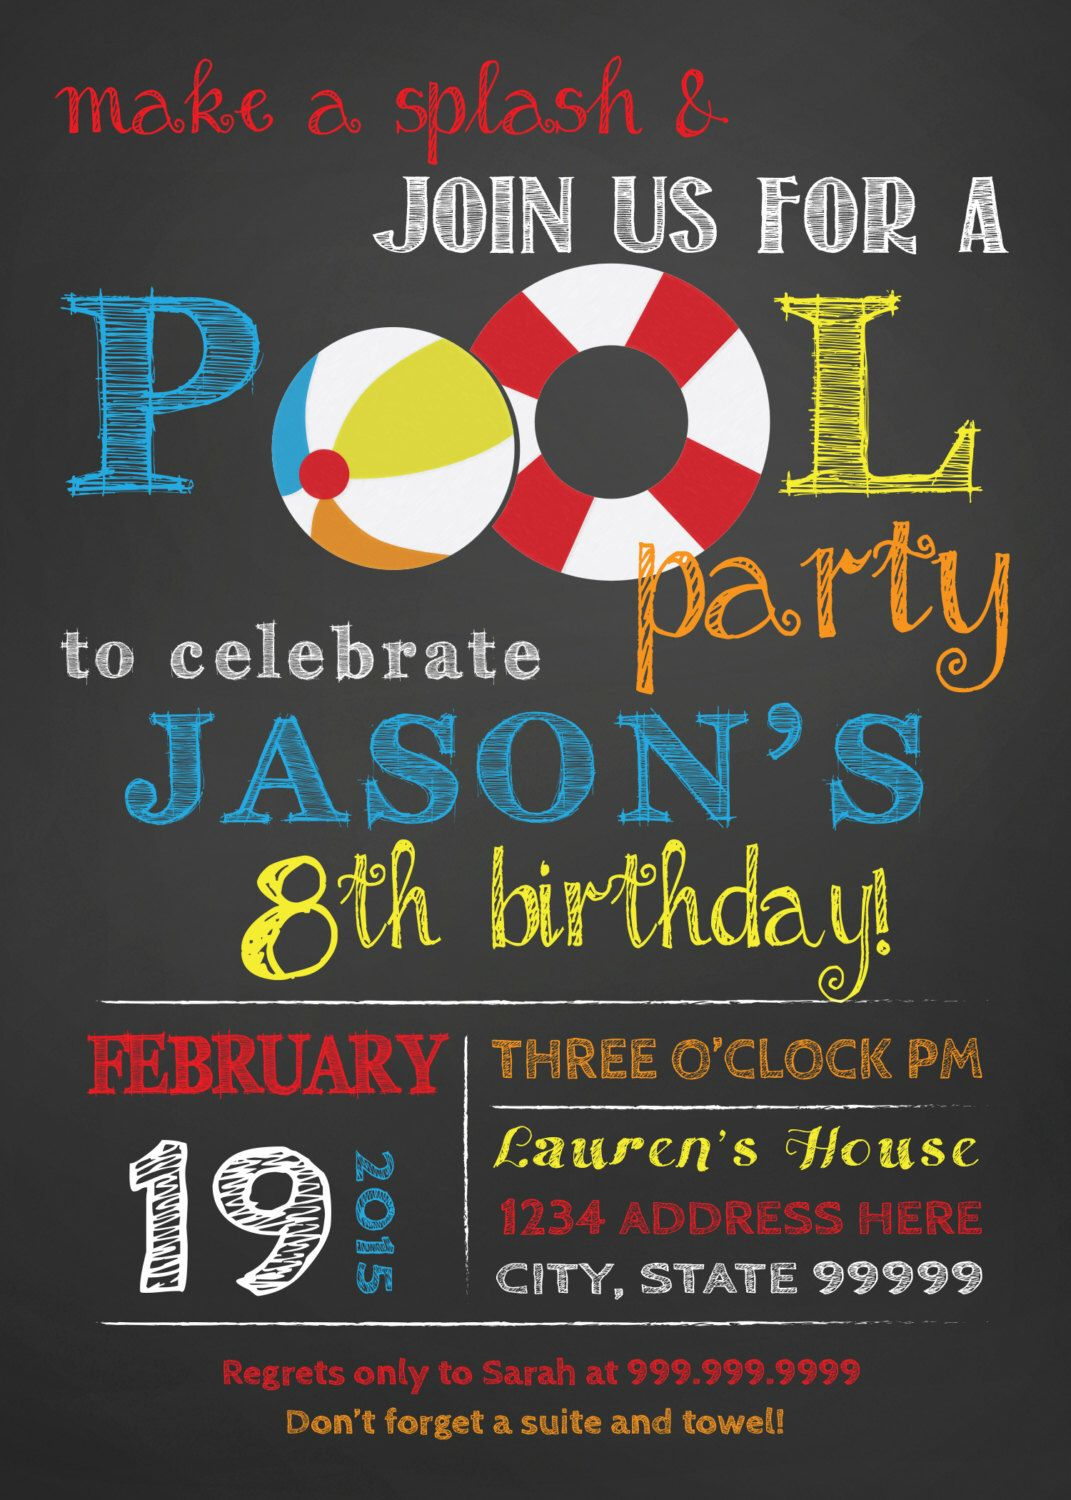 Birthday Pool Party Invitation Pool Party Bash Invite Chalkboard Summer Pool  Party Swimming By Sldesignteam On Etsy